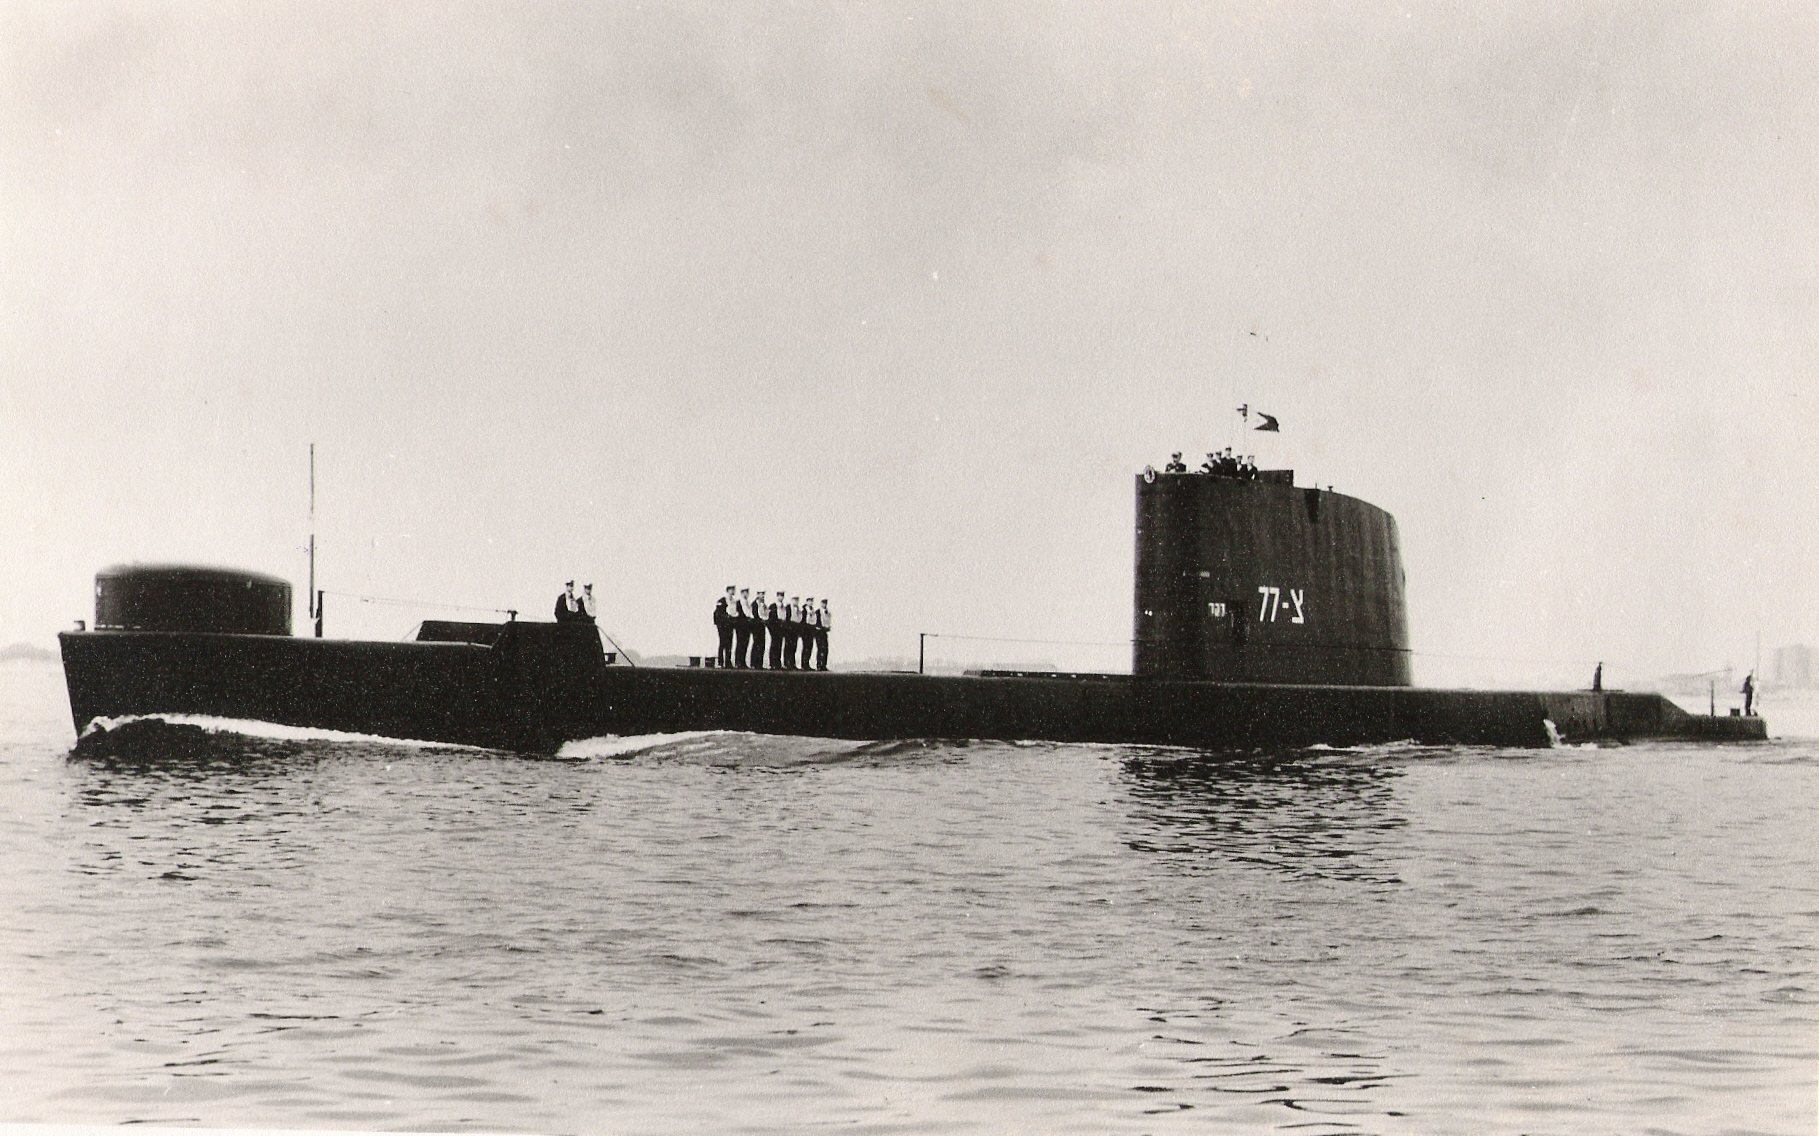 The Israeli submarine INS DAKAR